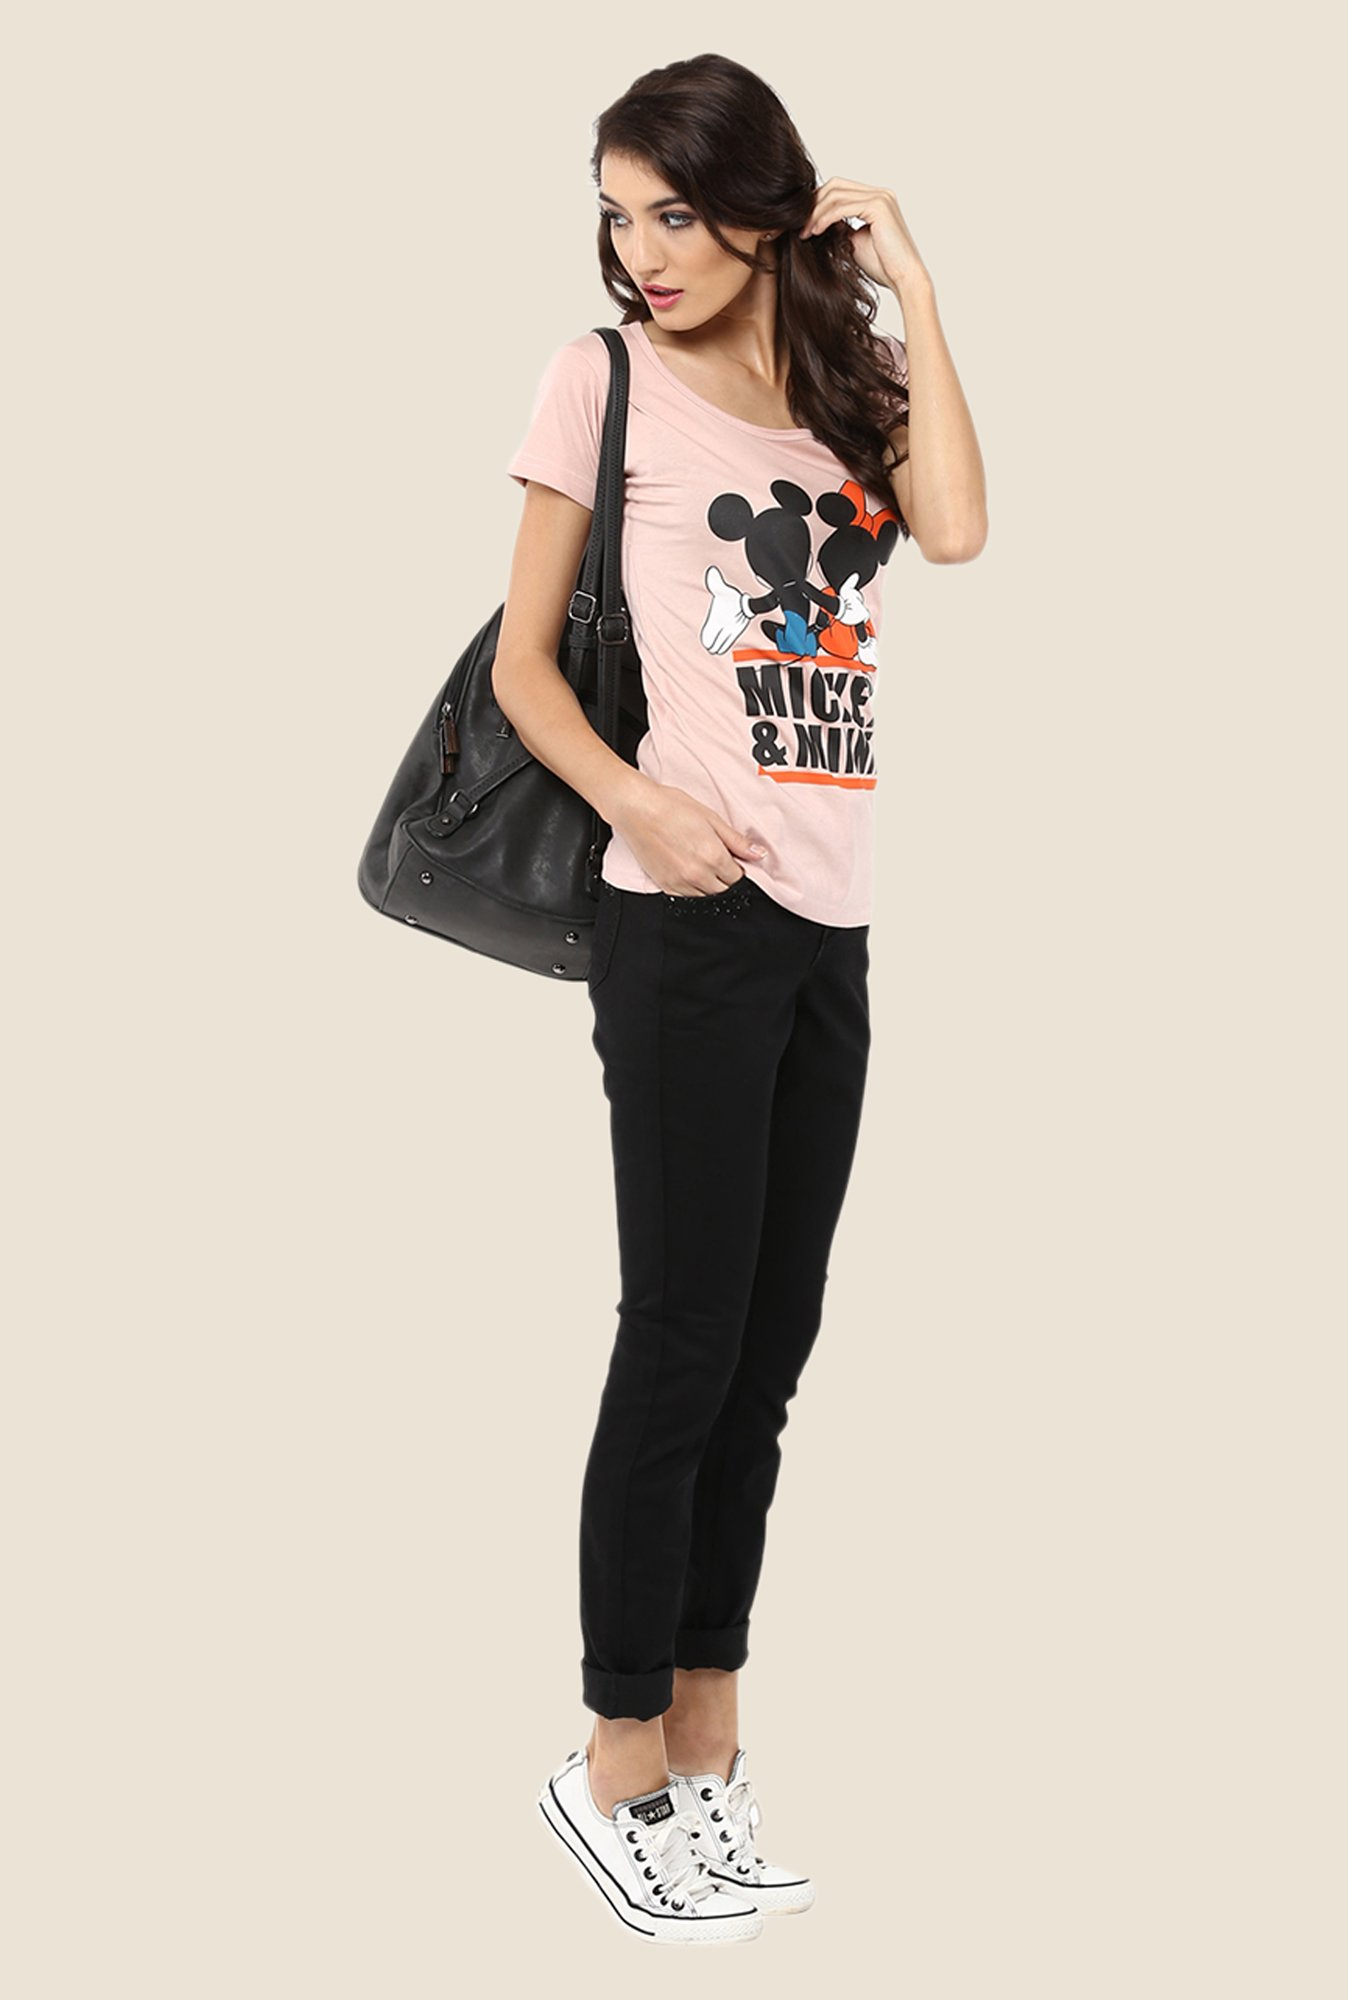 Yepme Marvel & Disney Pink Graphic Printed Tee